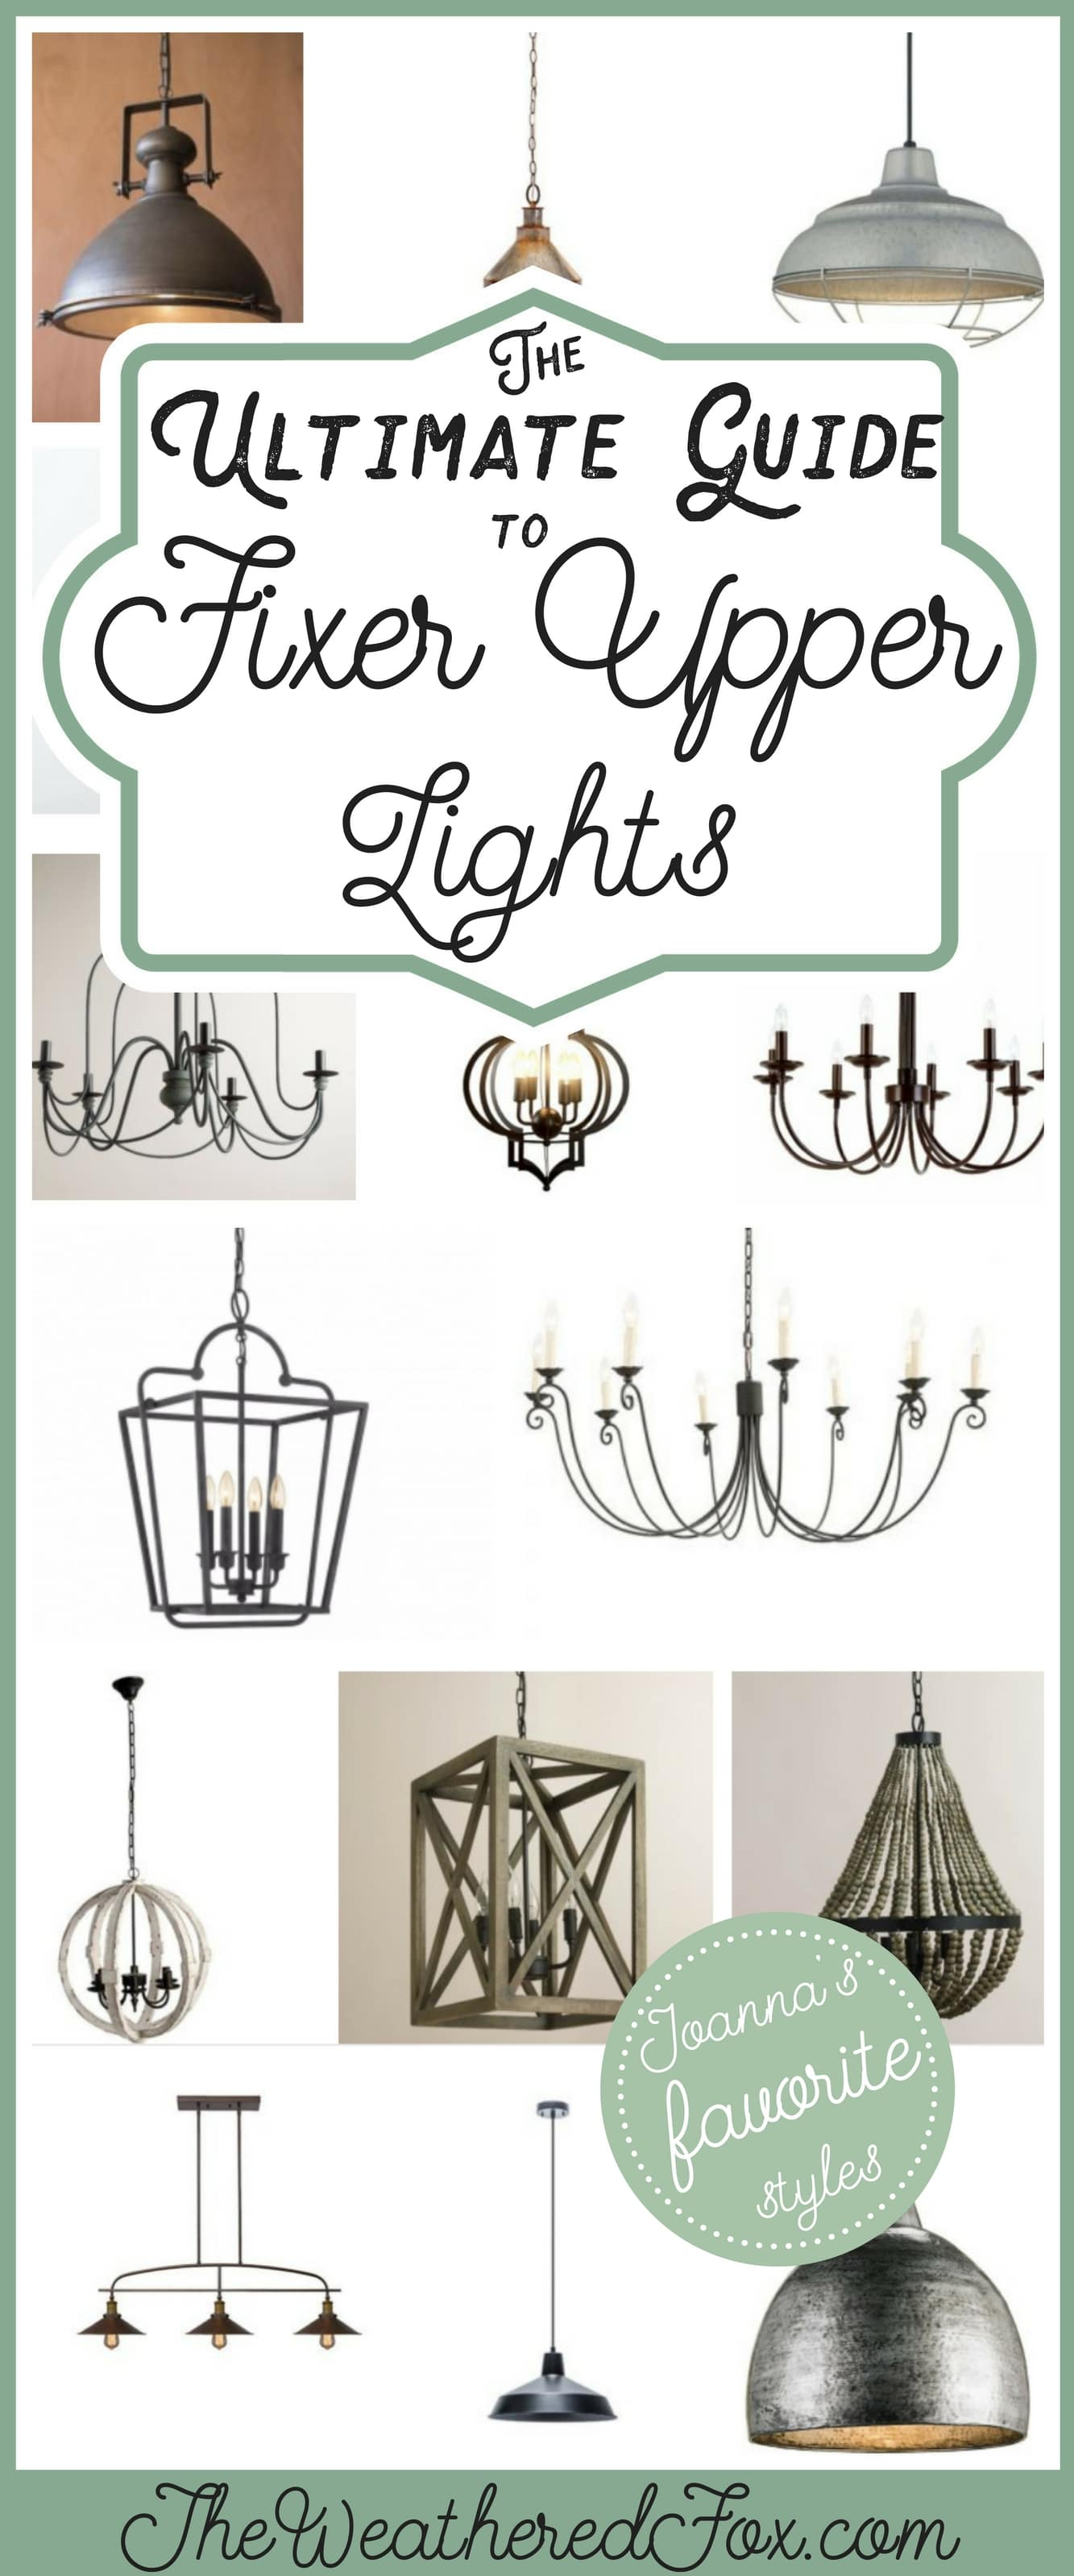 Fixer Upper Lighting For Your Home The Weathered Fox - Joanna gaines kitchen light fixtures